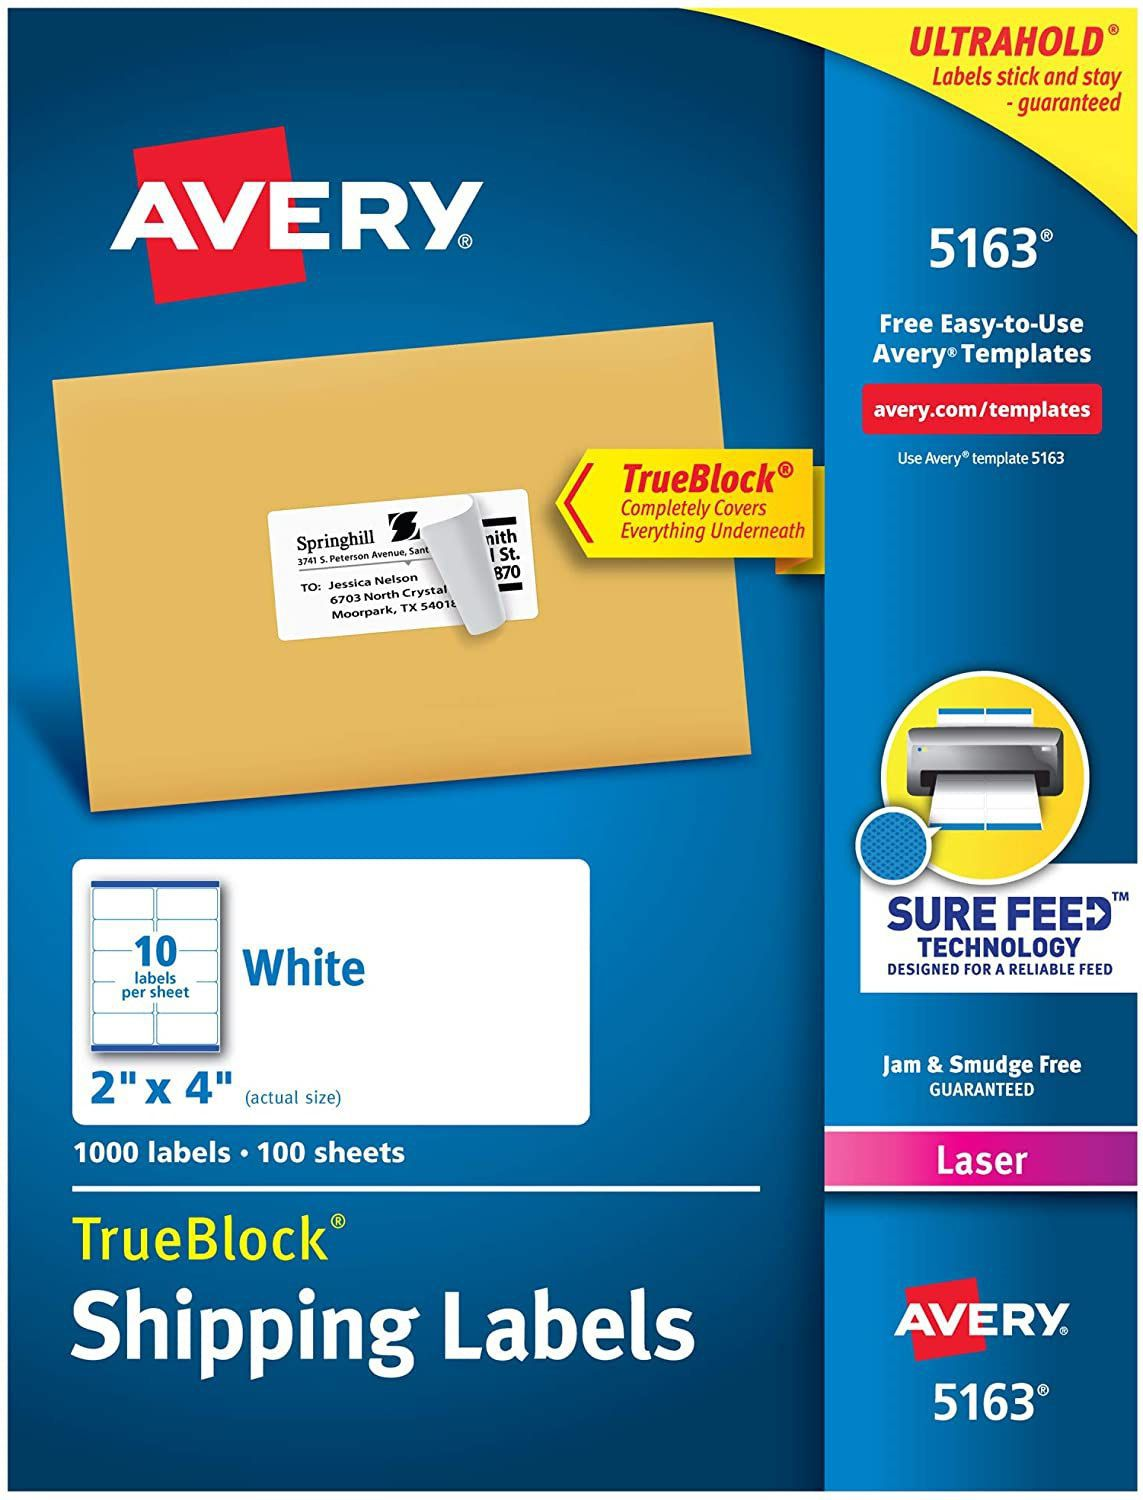 001 Top Free Avery Mailing Label Template Image  Templates Addres For Mac 8160 5163Full